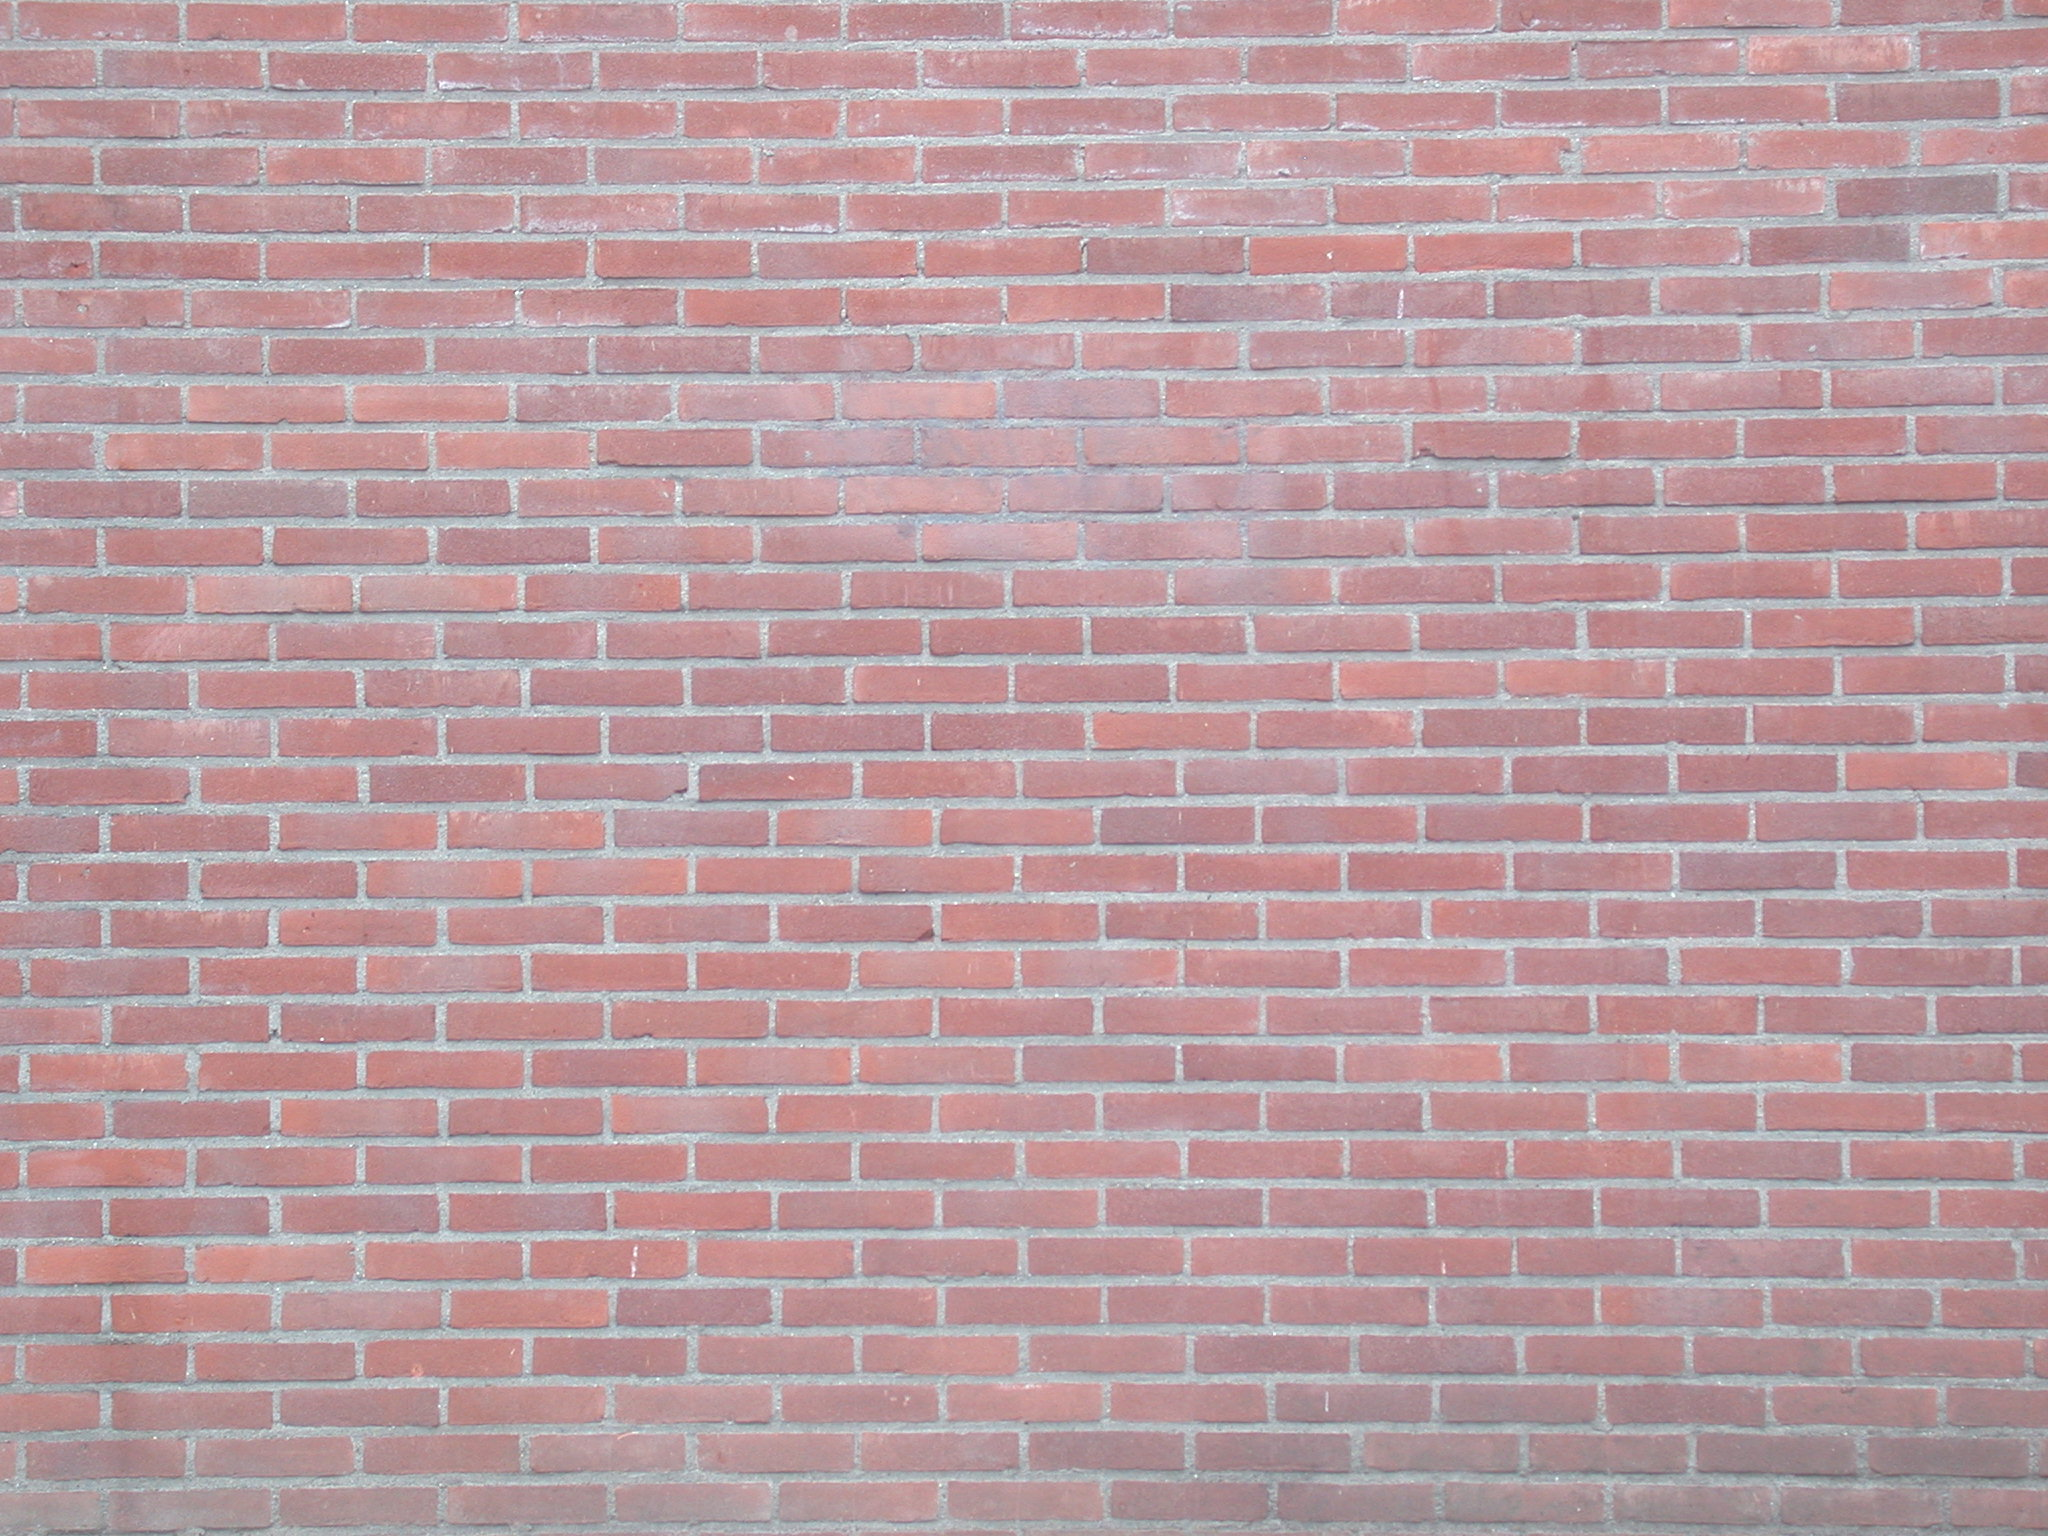 flat smooth surface red brick wall bricks lined up lined-up pattern